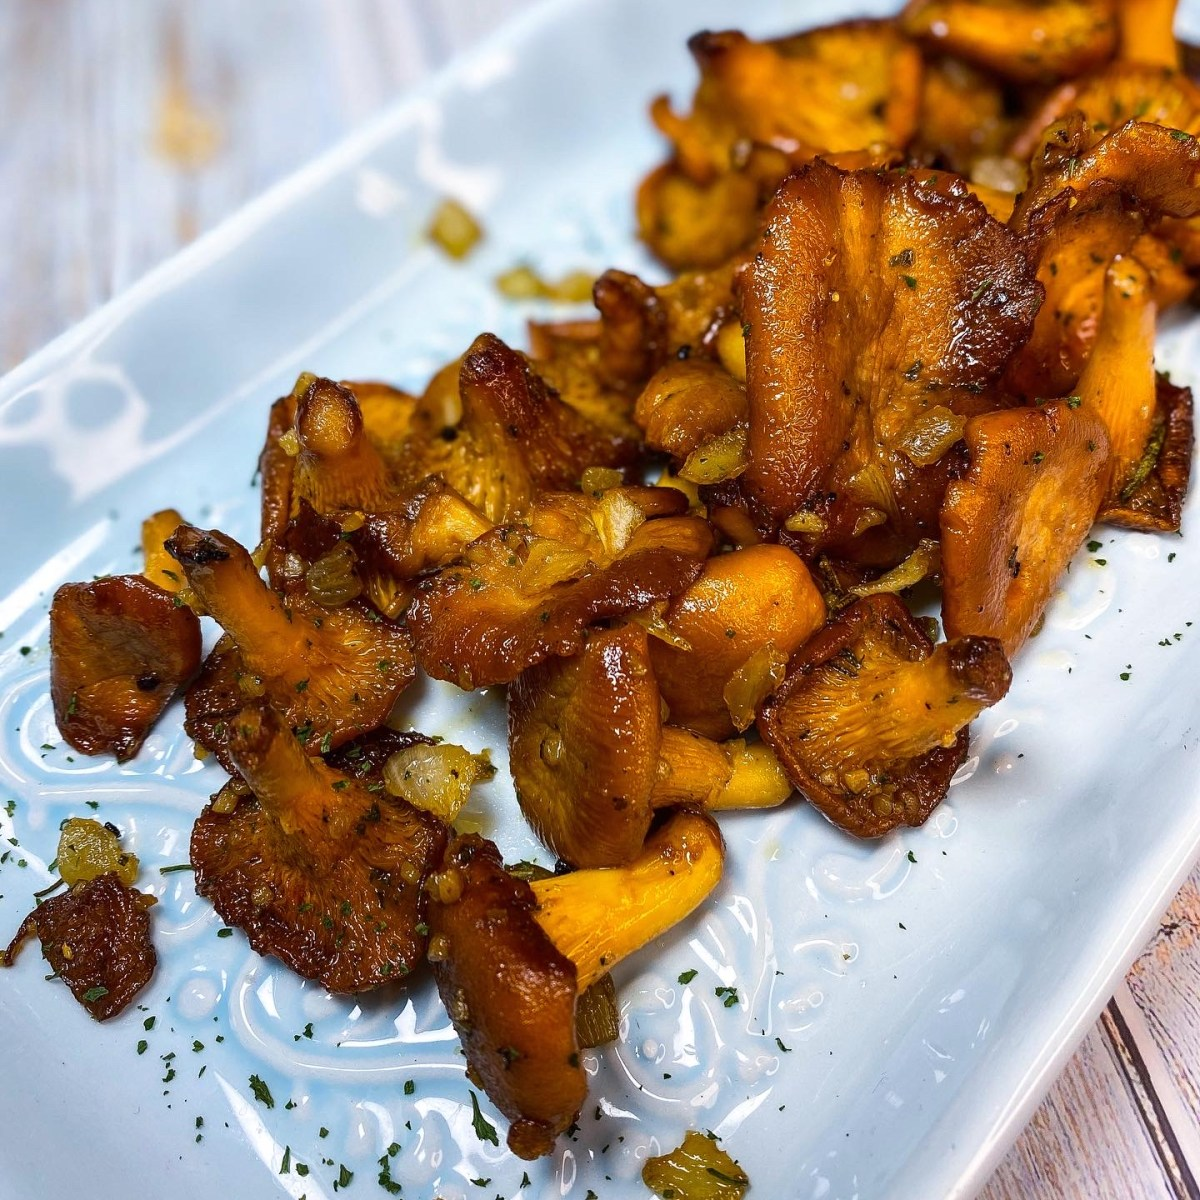 Candied maple chanterelle mushrooms